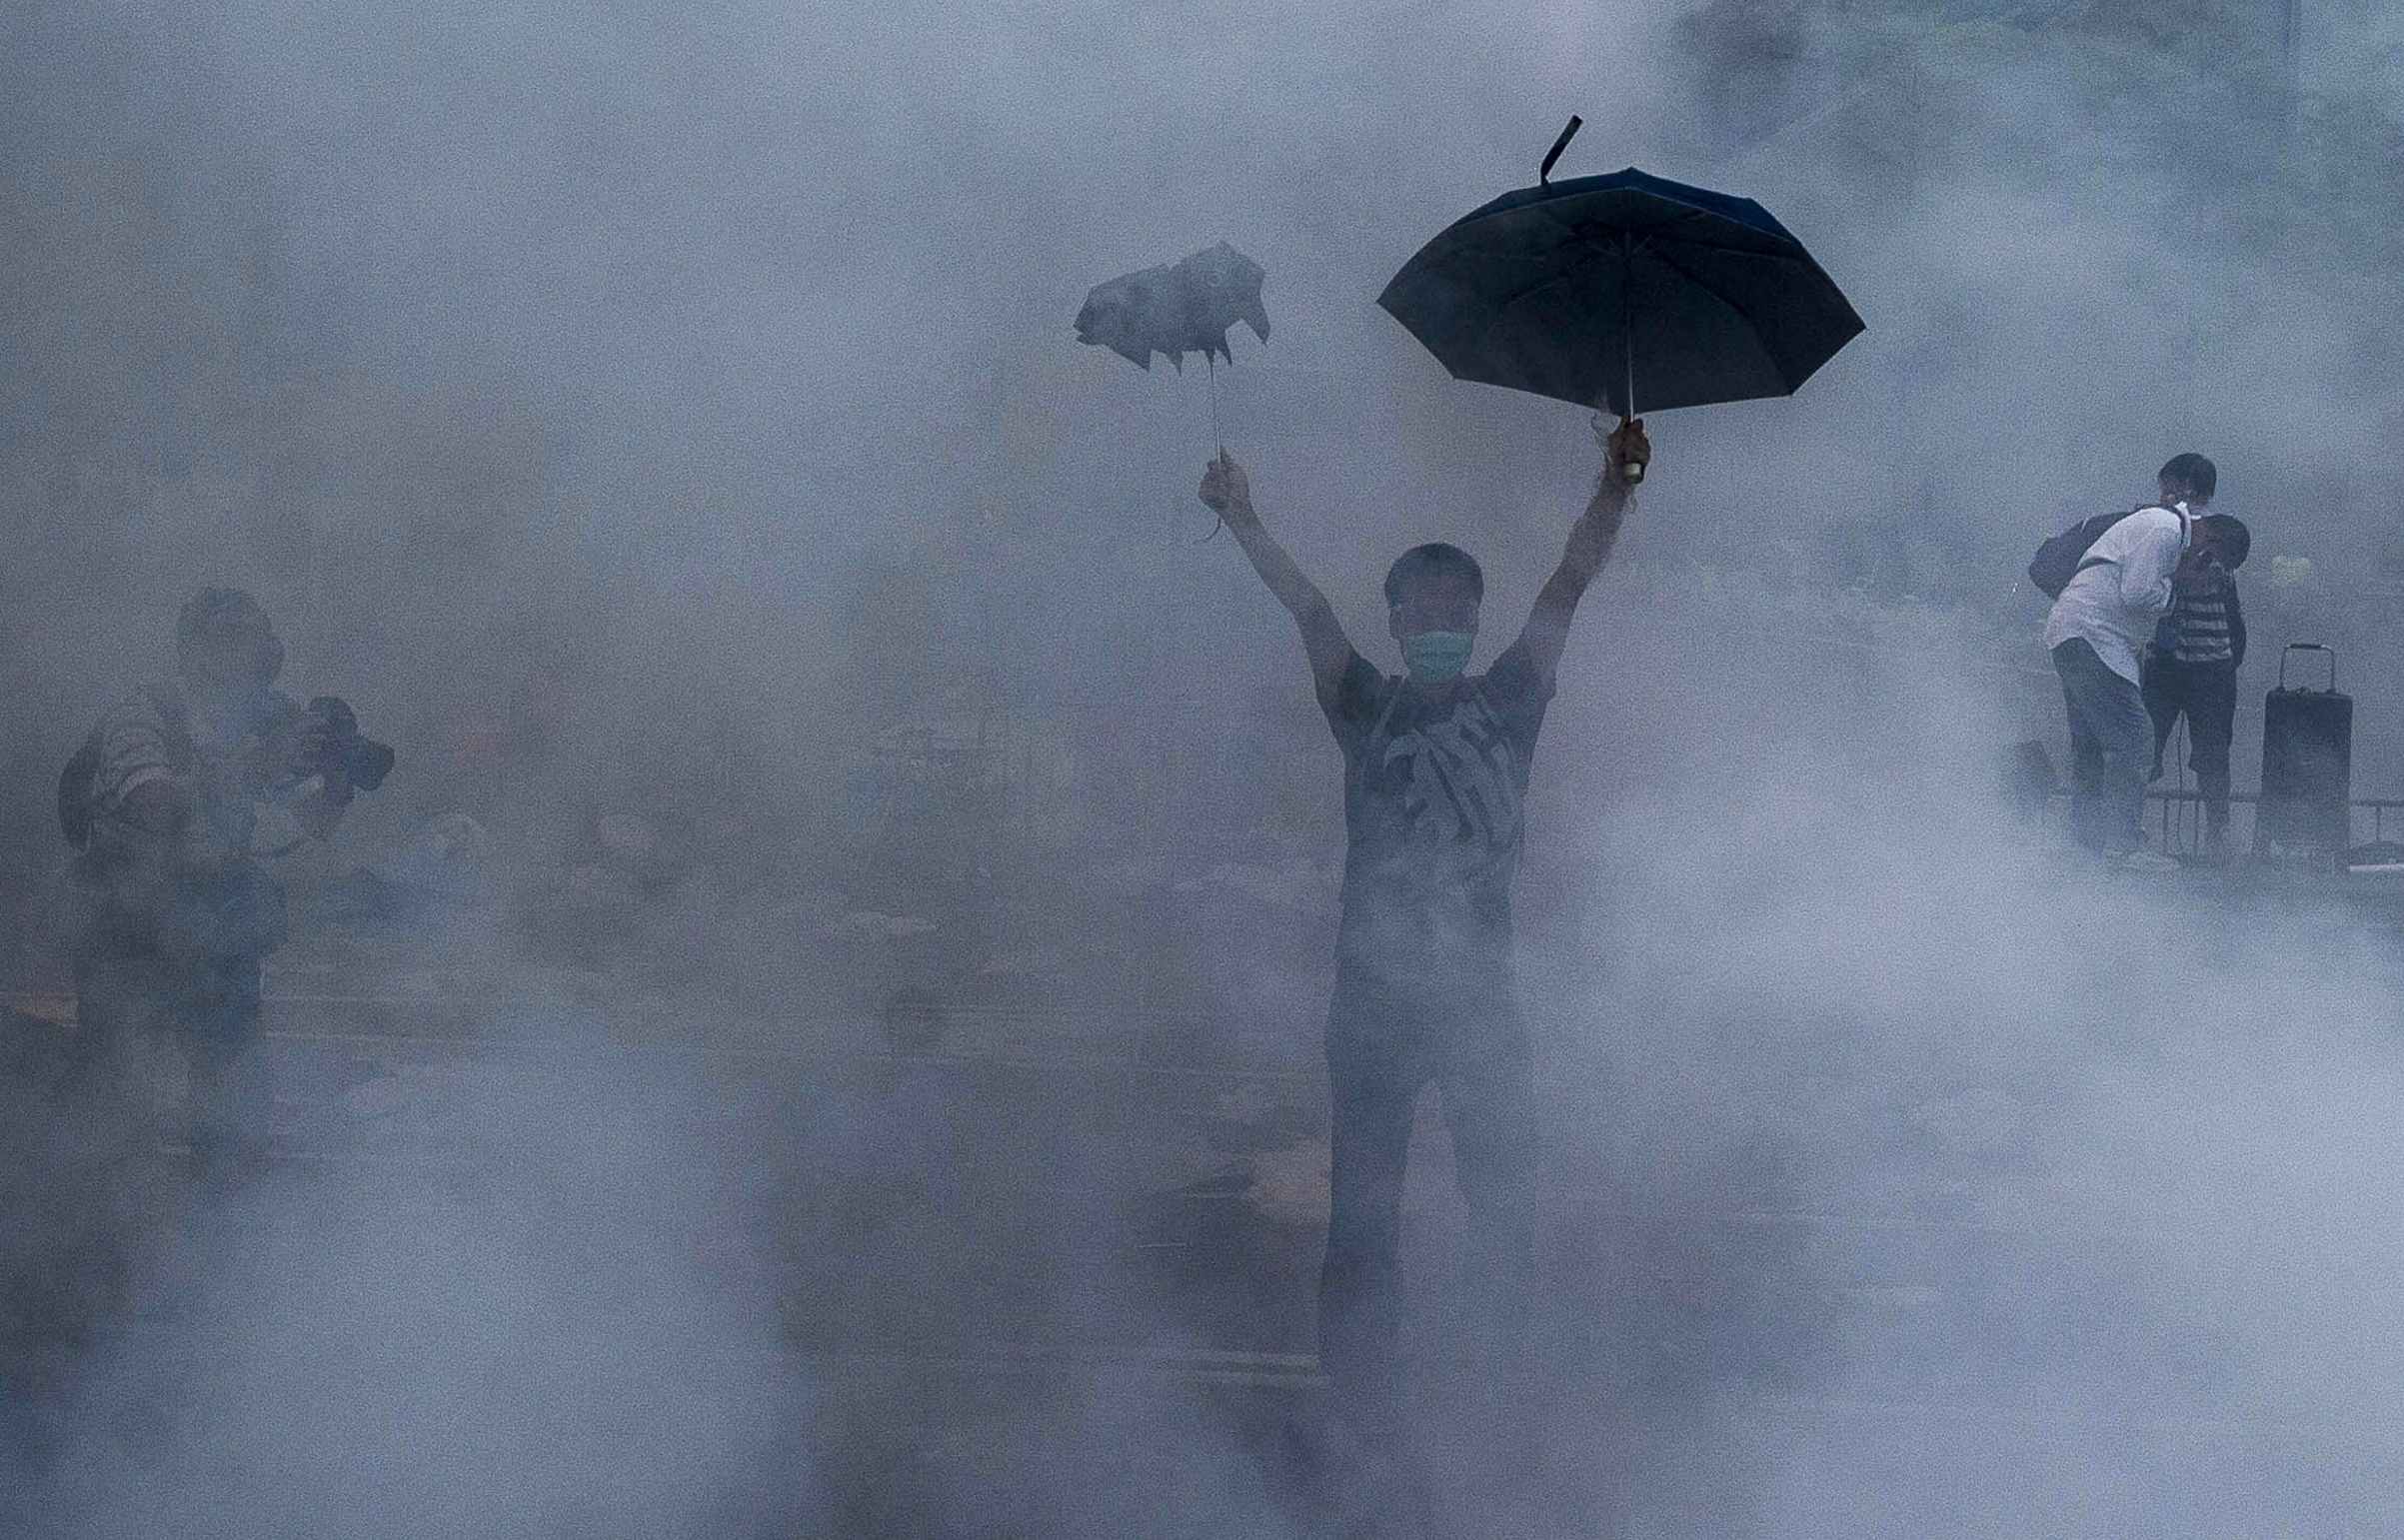 A pro-democracy demonstrator gestures after police fired tear gas towards protesters near the Hong Kong government headquarters on Sept. 28, 2014. The incident marked the birth of the 79-day Umbrella Revolution, named after the umbrellas that demonstrators used to shield themselves from police pepper spray. The movement saw tens of thousands of Hongkongers occupy the streets in a push for greater democracy and the right to freely chose the territory's leader.